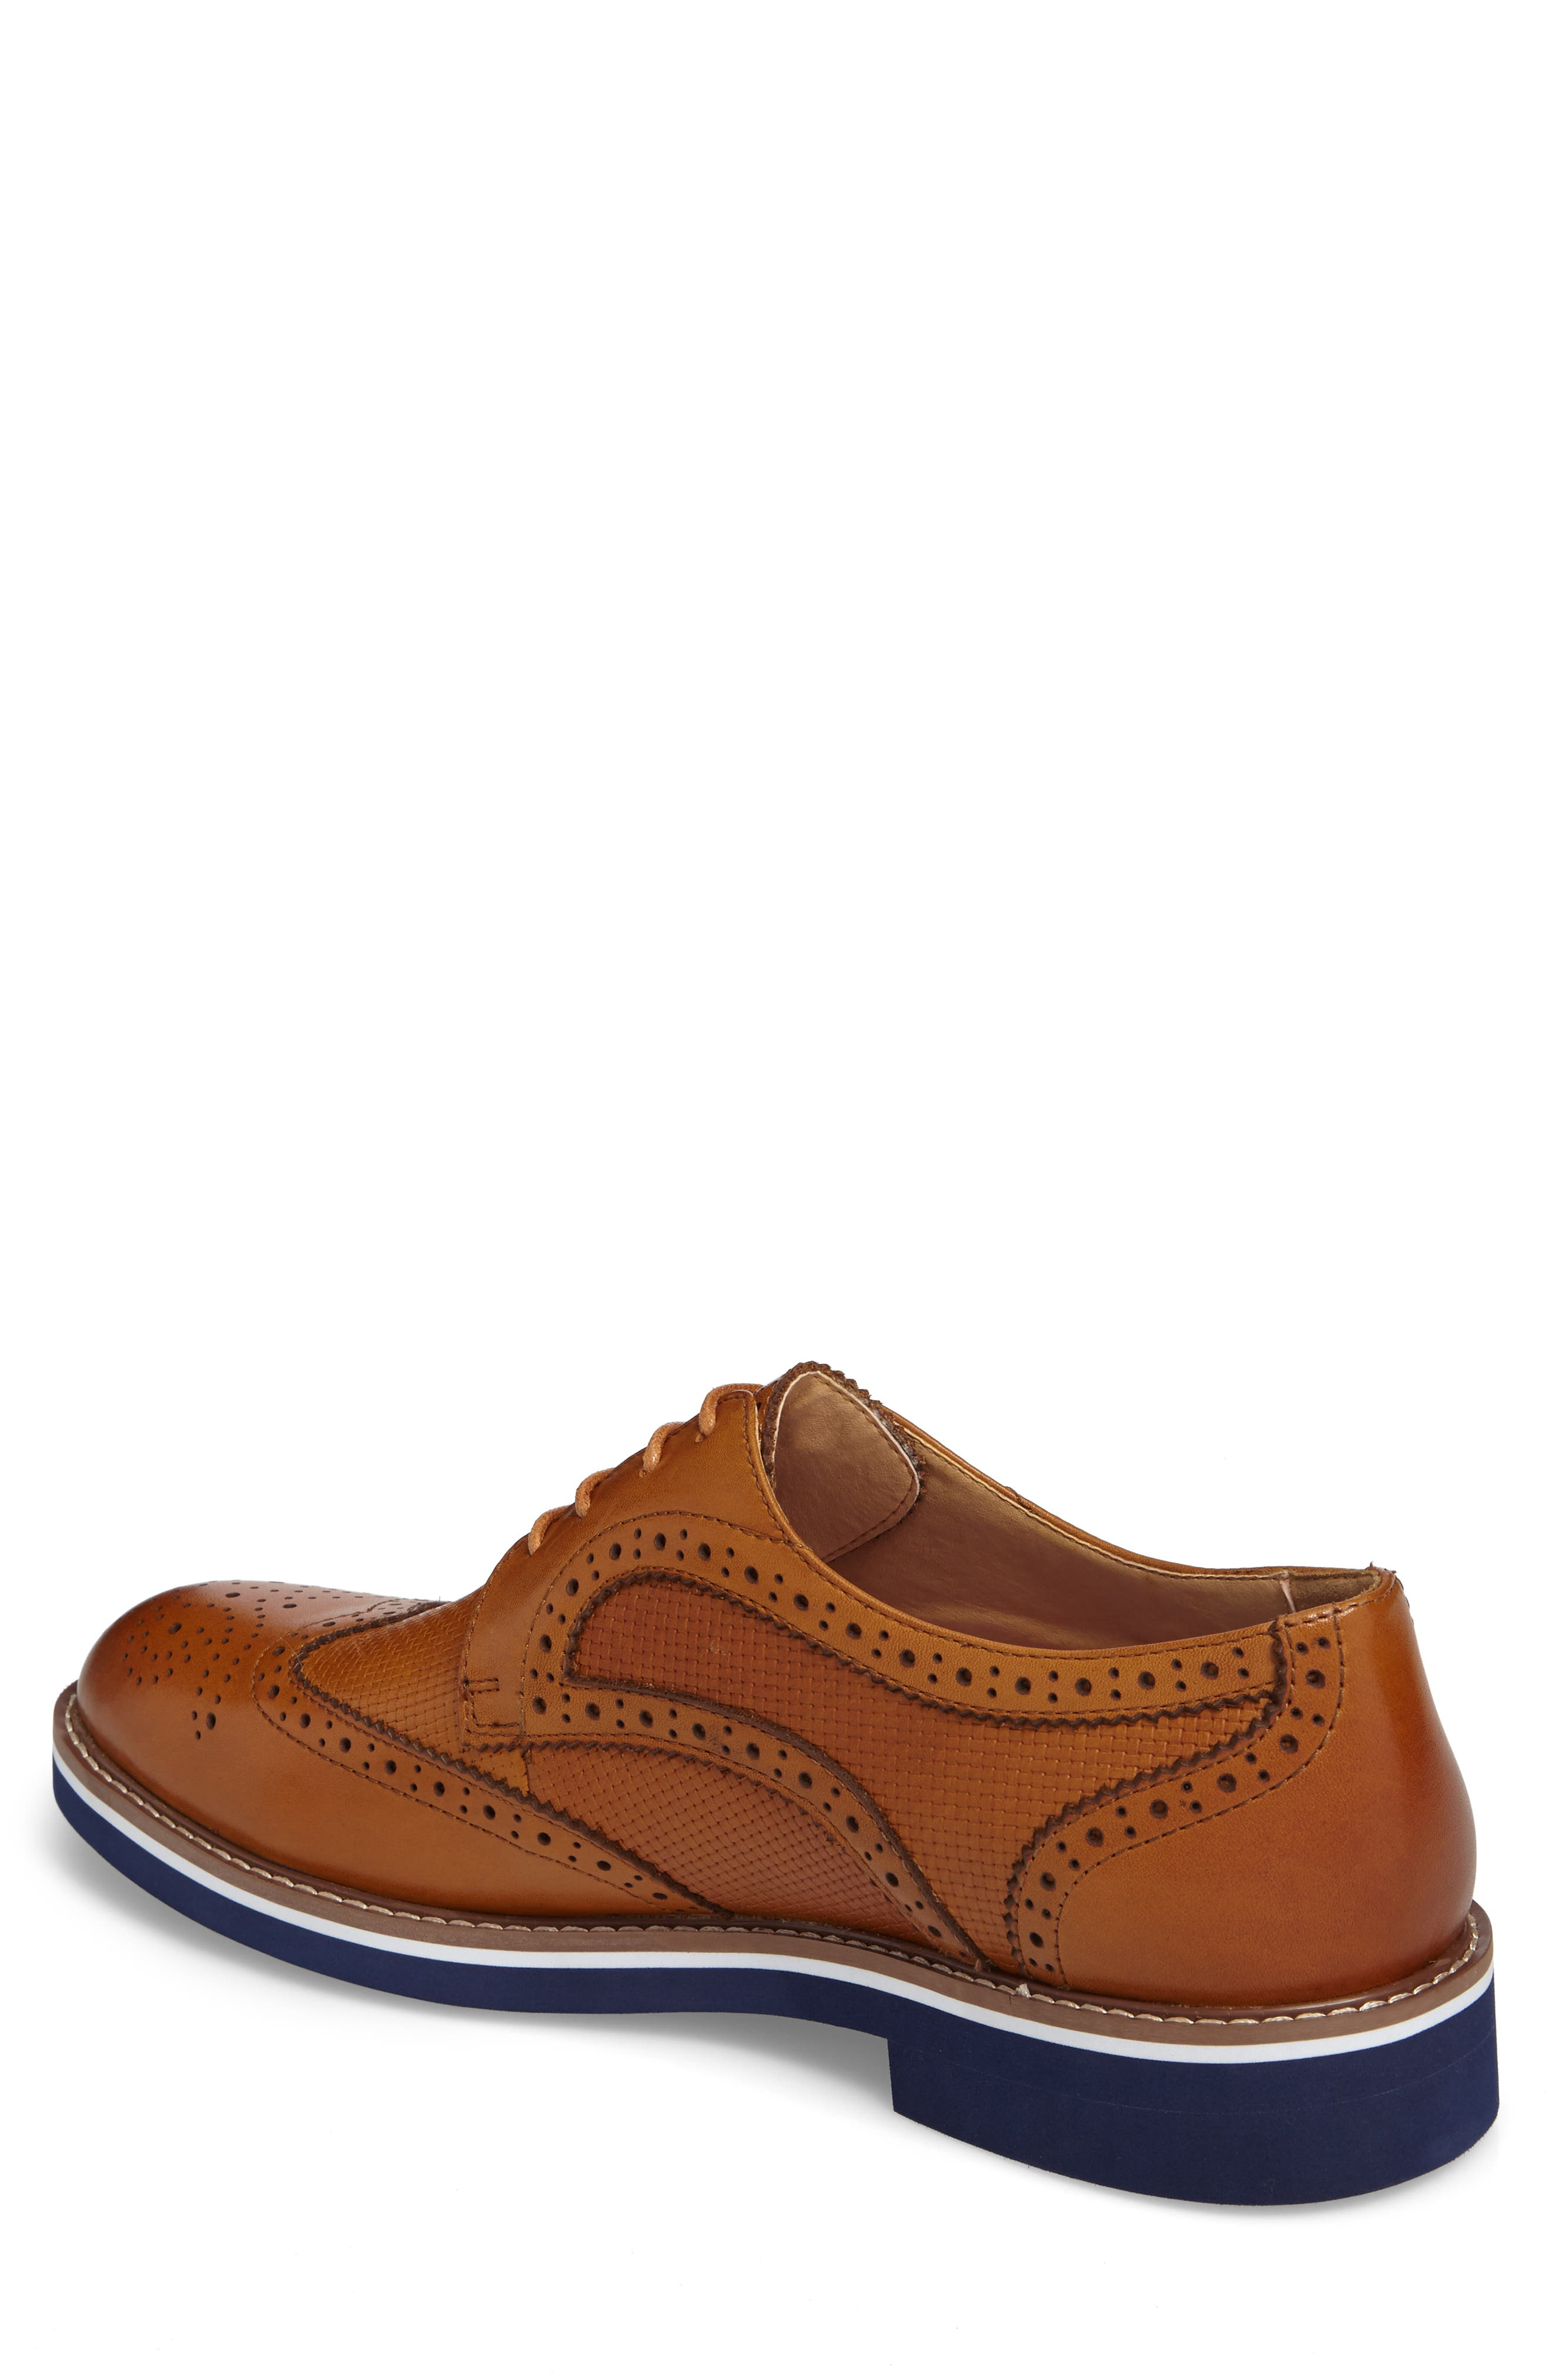 Northfields Spectator Shoe,                             Alternate thumbnail 2, color,                             Cognac Leather